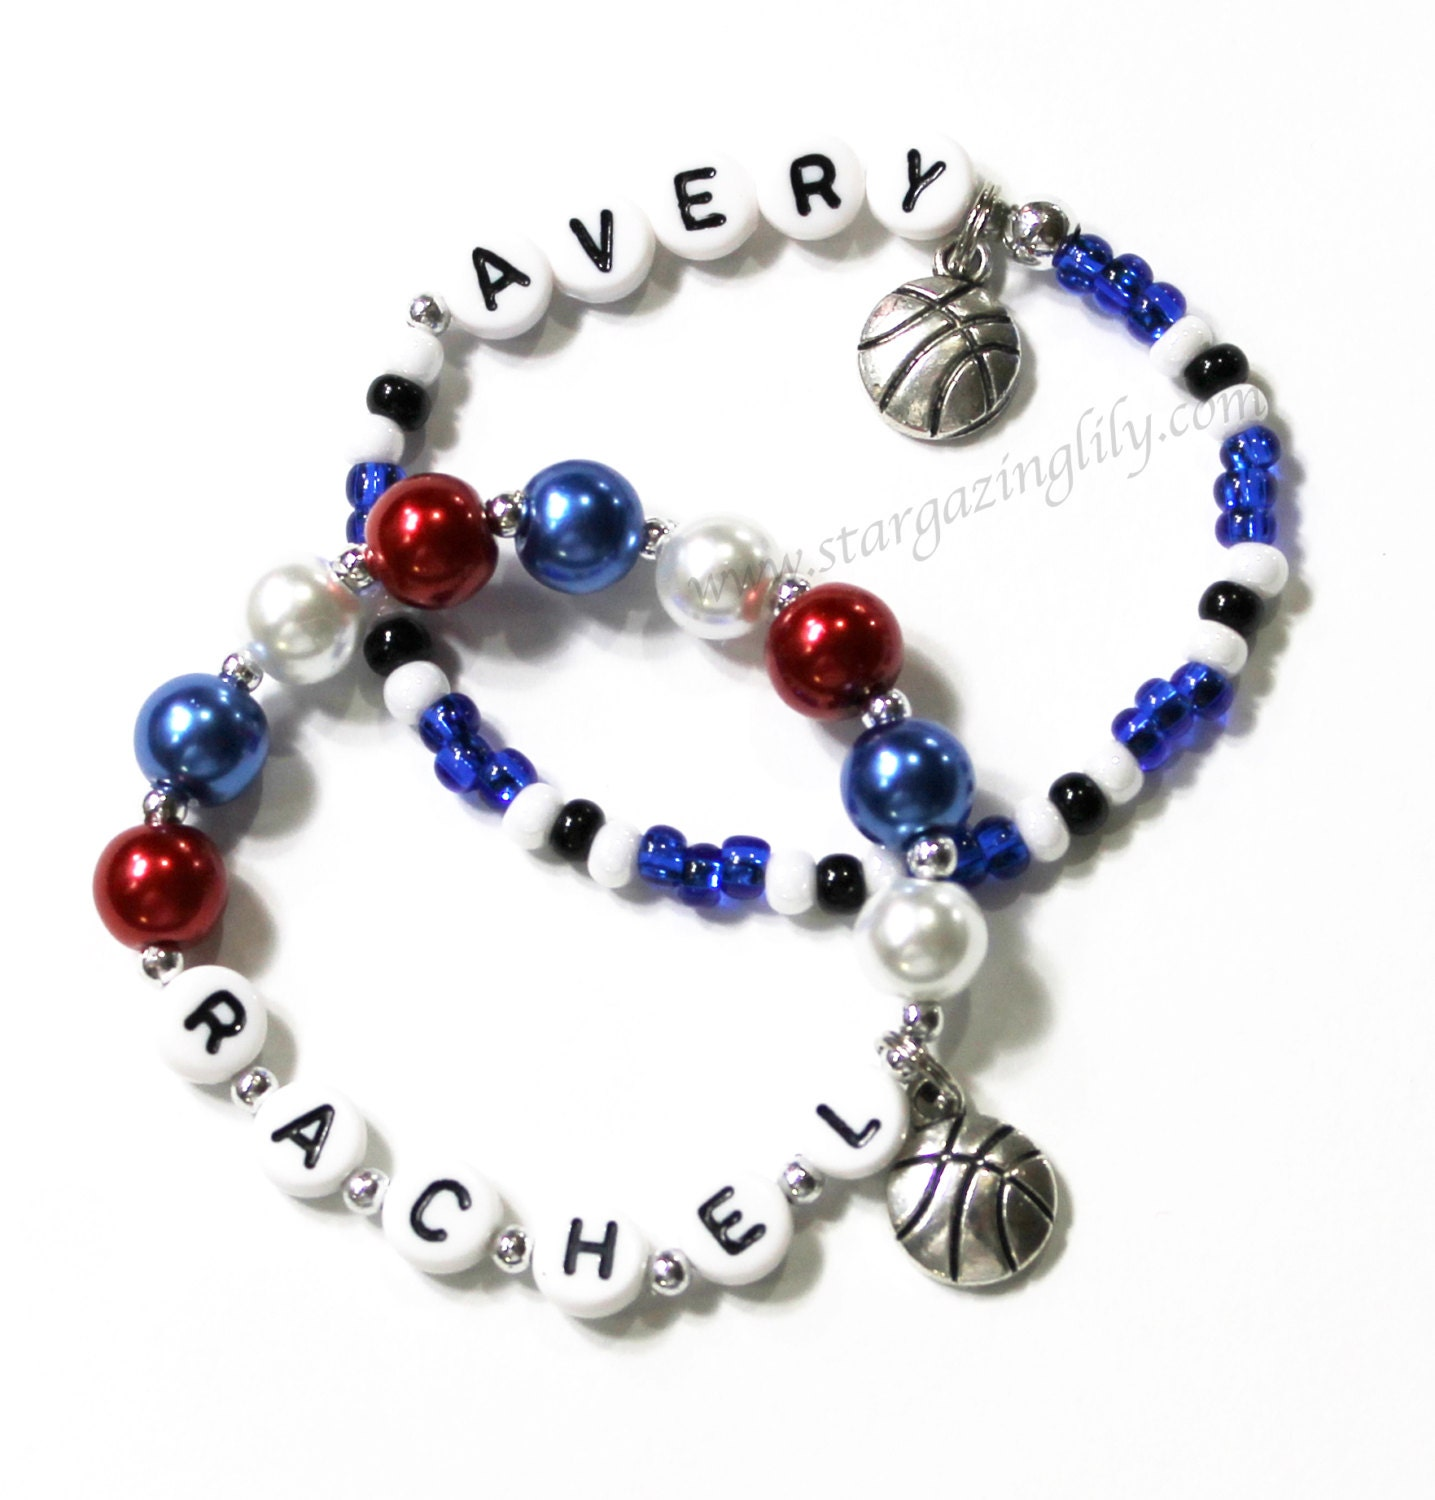 Basketball Charm Bracelet: Basketball Charm Bracelet PERSONALIZED With Name. Great Party